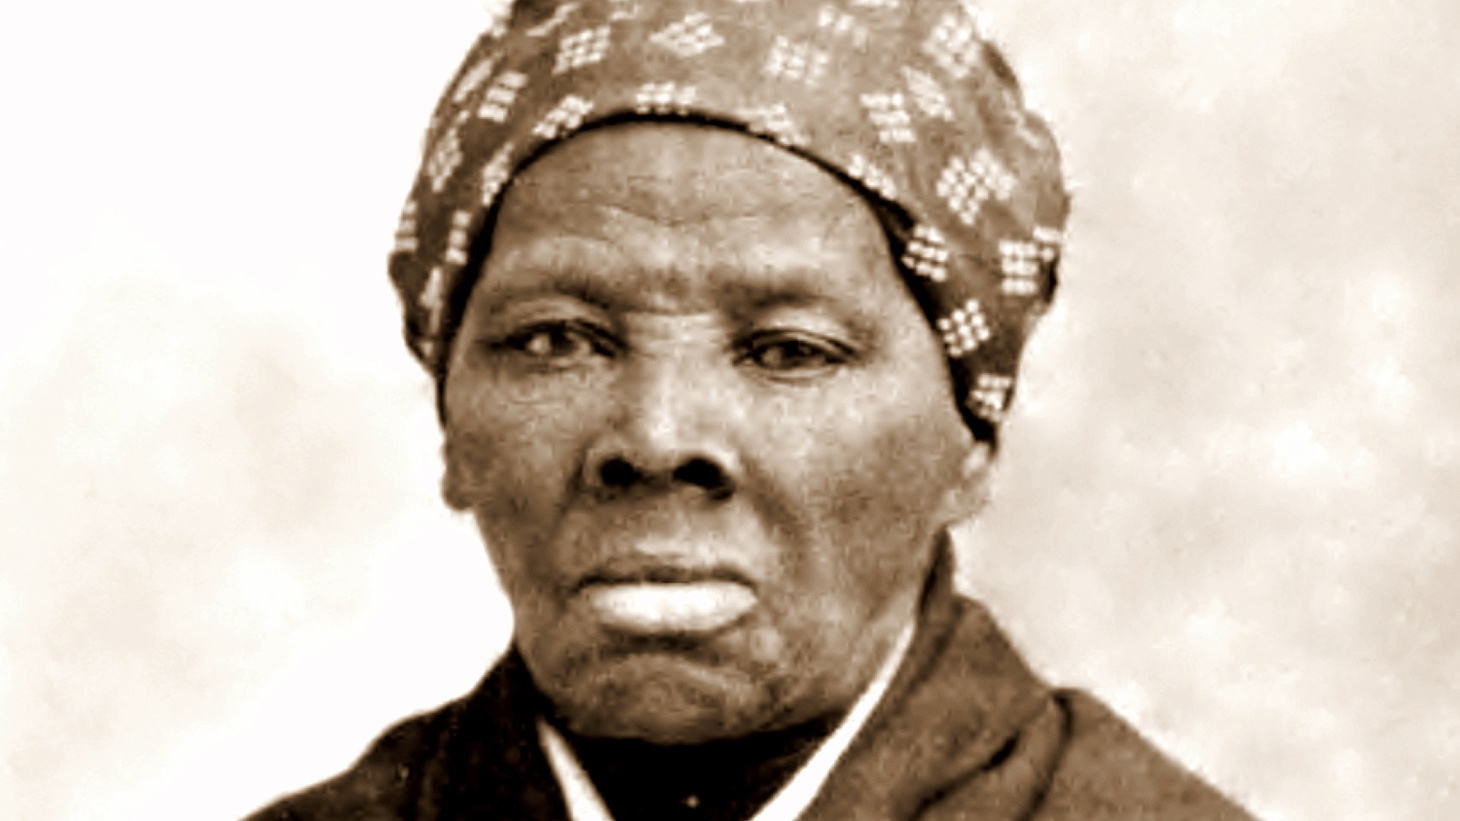 Slaveholder Andrew Jackson will be  replaced on the $20 bill by Harriet Tubman , the former slave turned abolitionist. But how much do Americans know about her?